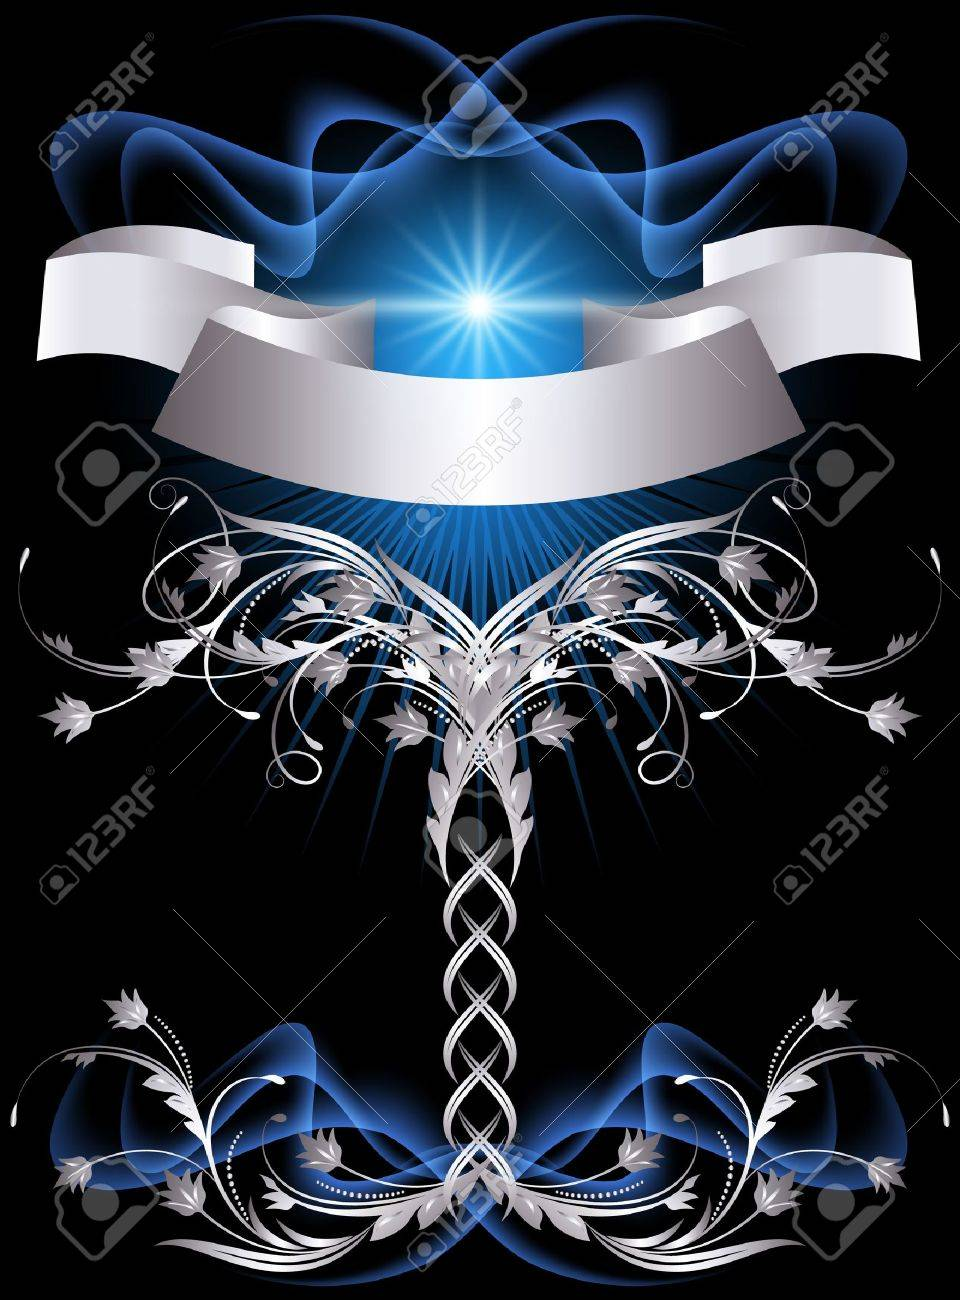 Background with glowing stars and silver ornament Stock Vector - 10300009